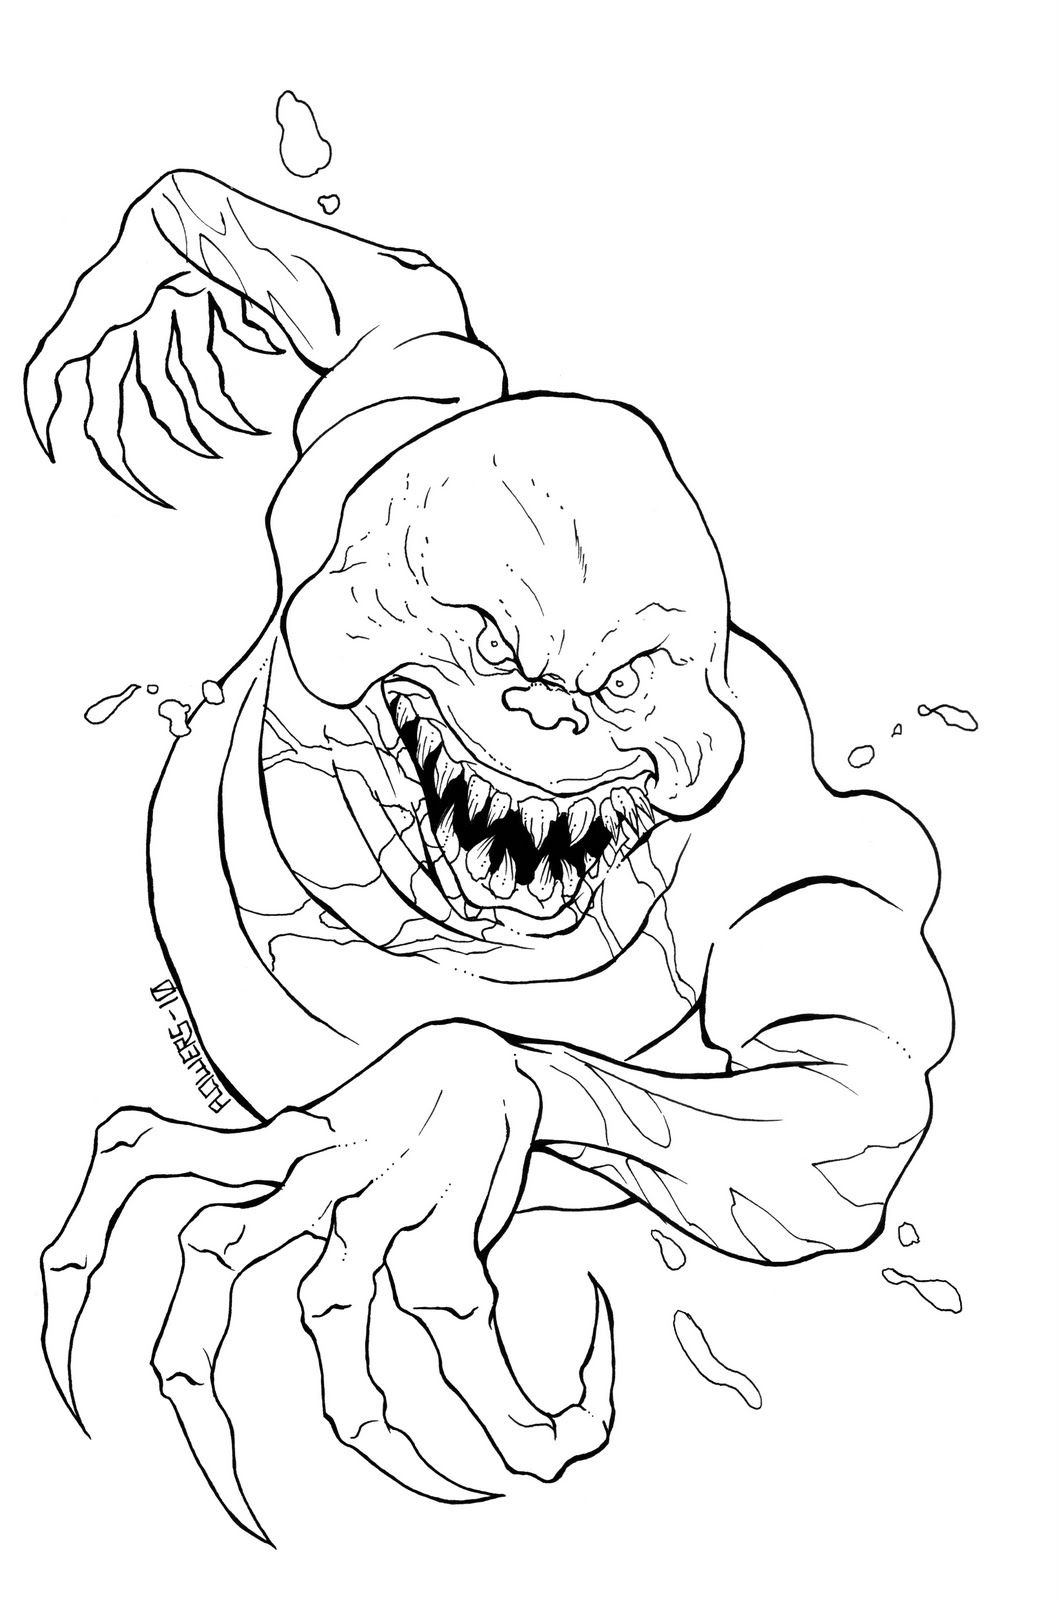 Scary Halloween Coloring Pages Free Large Images Monster Coloring Pages Scary Coloring Pages Halloween Coloring